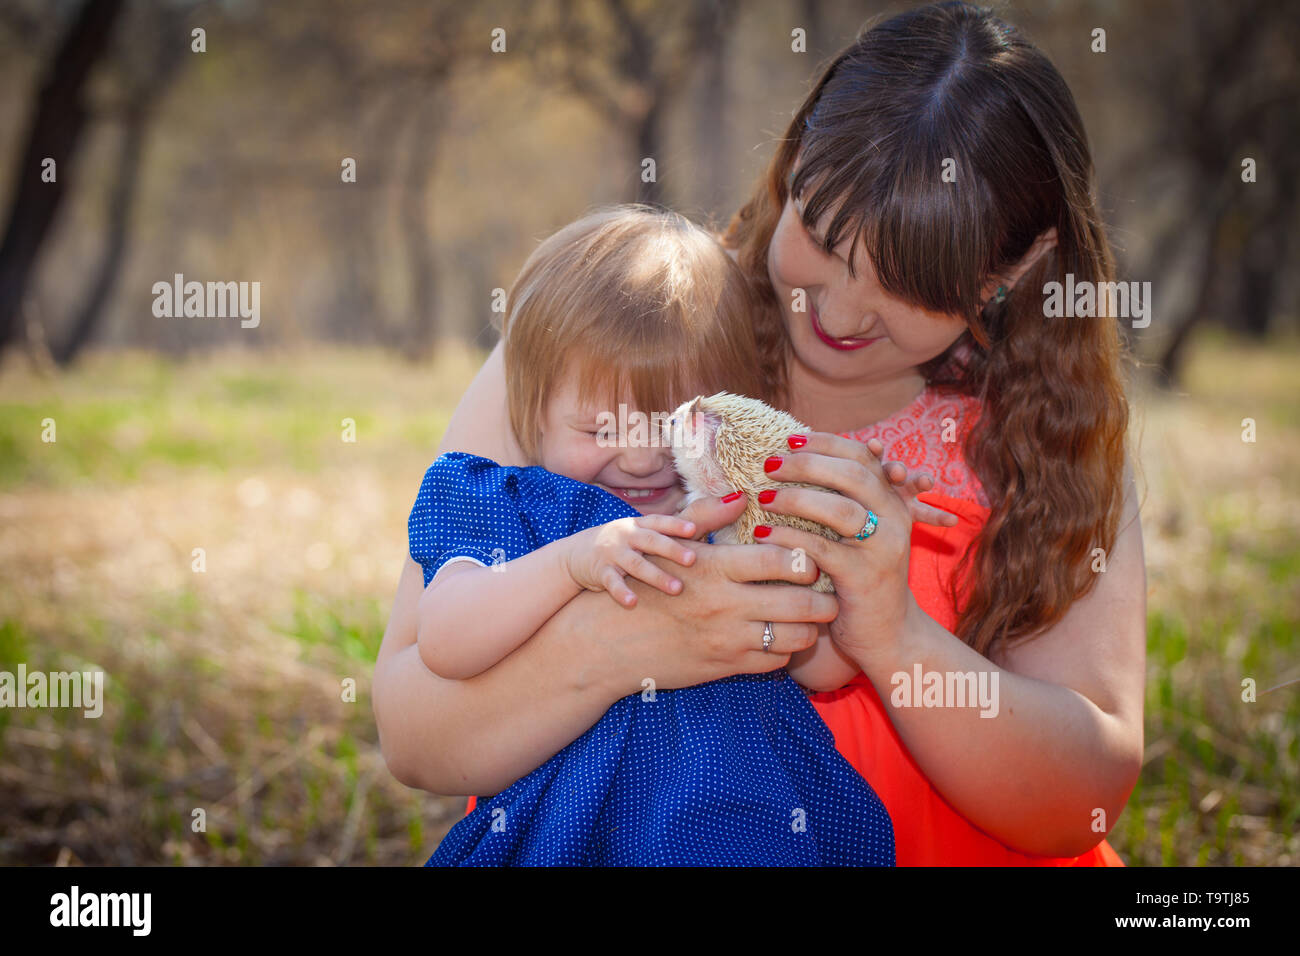 The concept of fun. Mom and daughter are playing with a hedgehog. The little girl laughs with happiness. - Stock Image